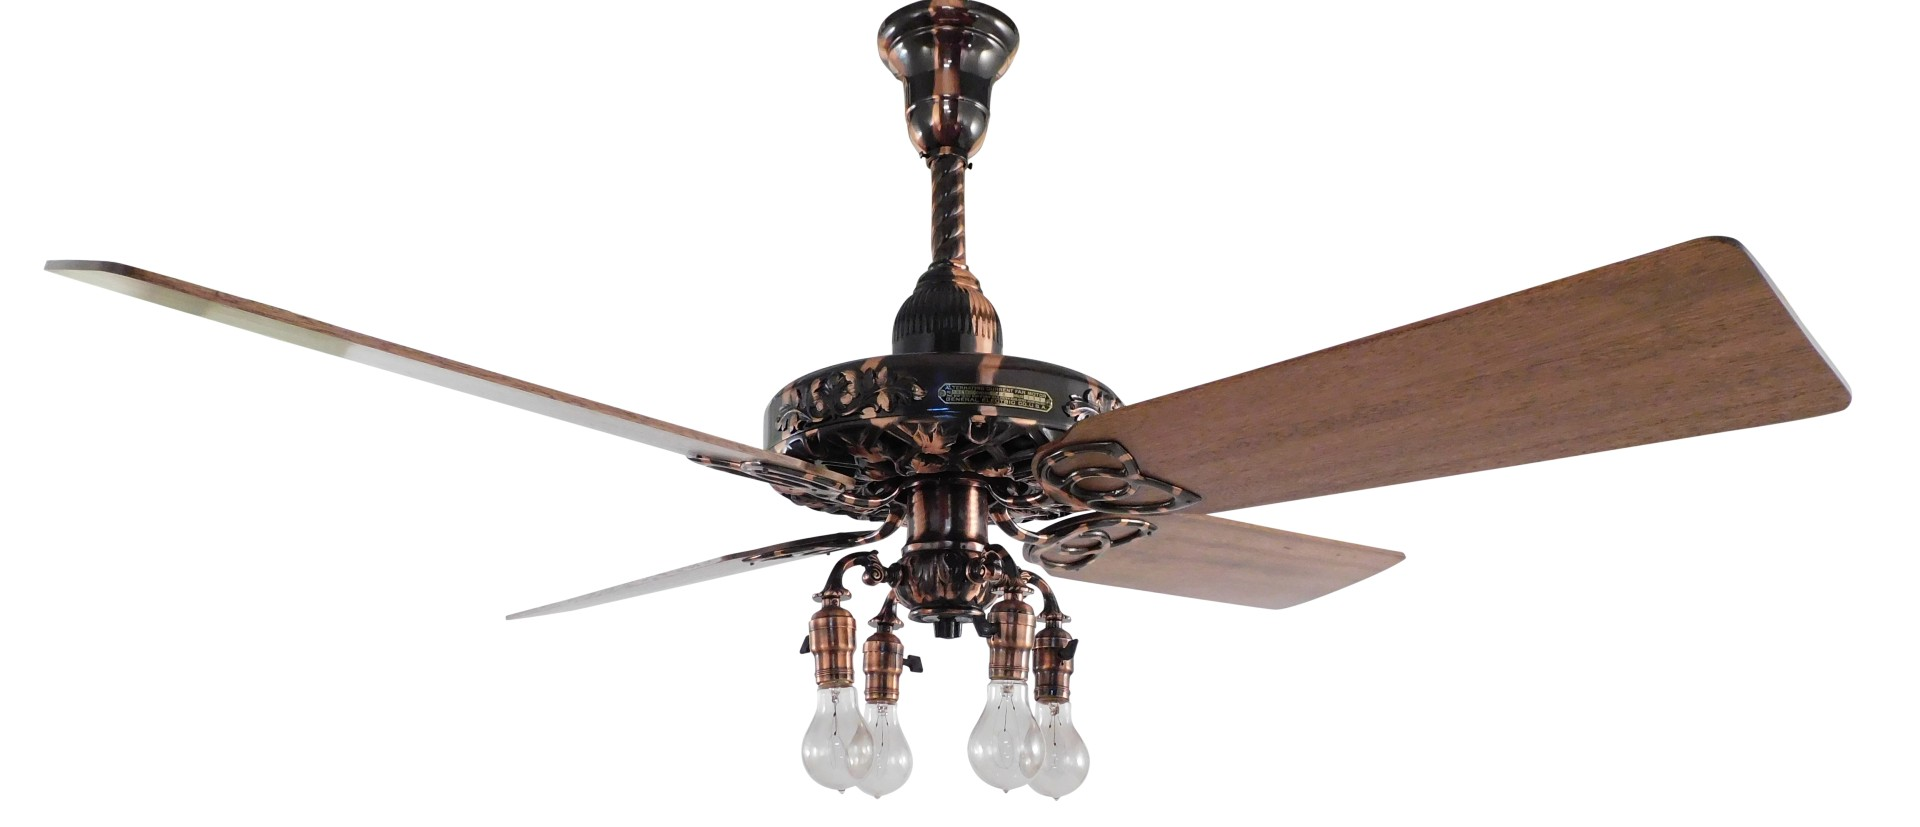 Circa 1909 Restored Copper Oxide GE Oak Leaf Ceiling Fan